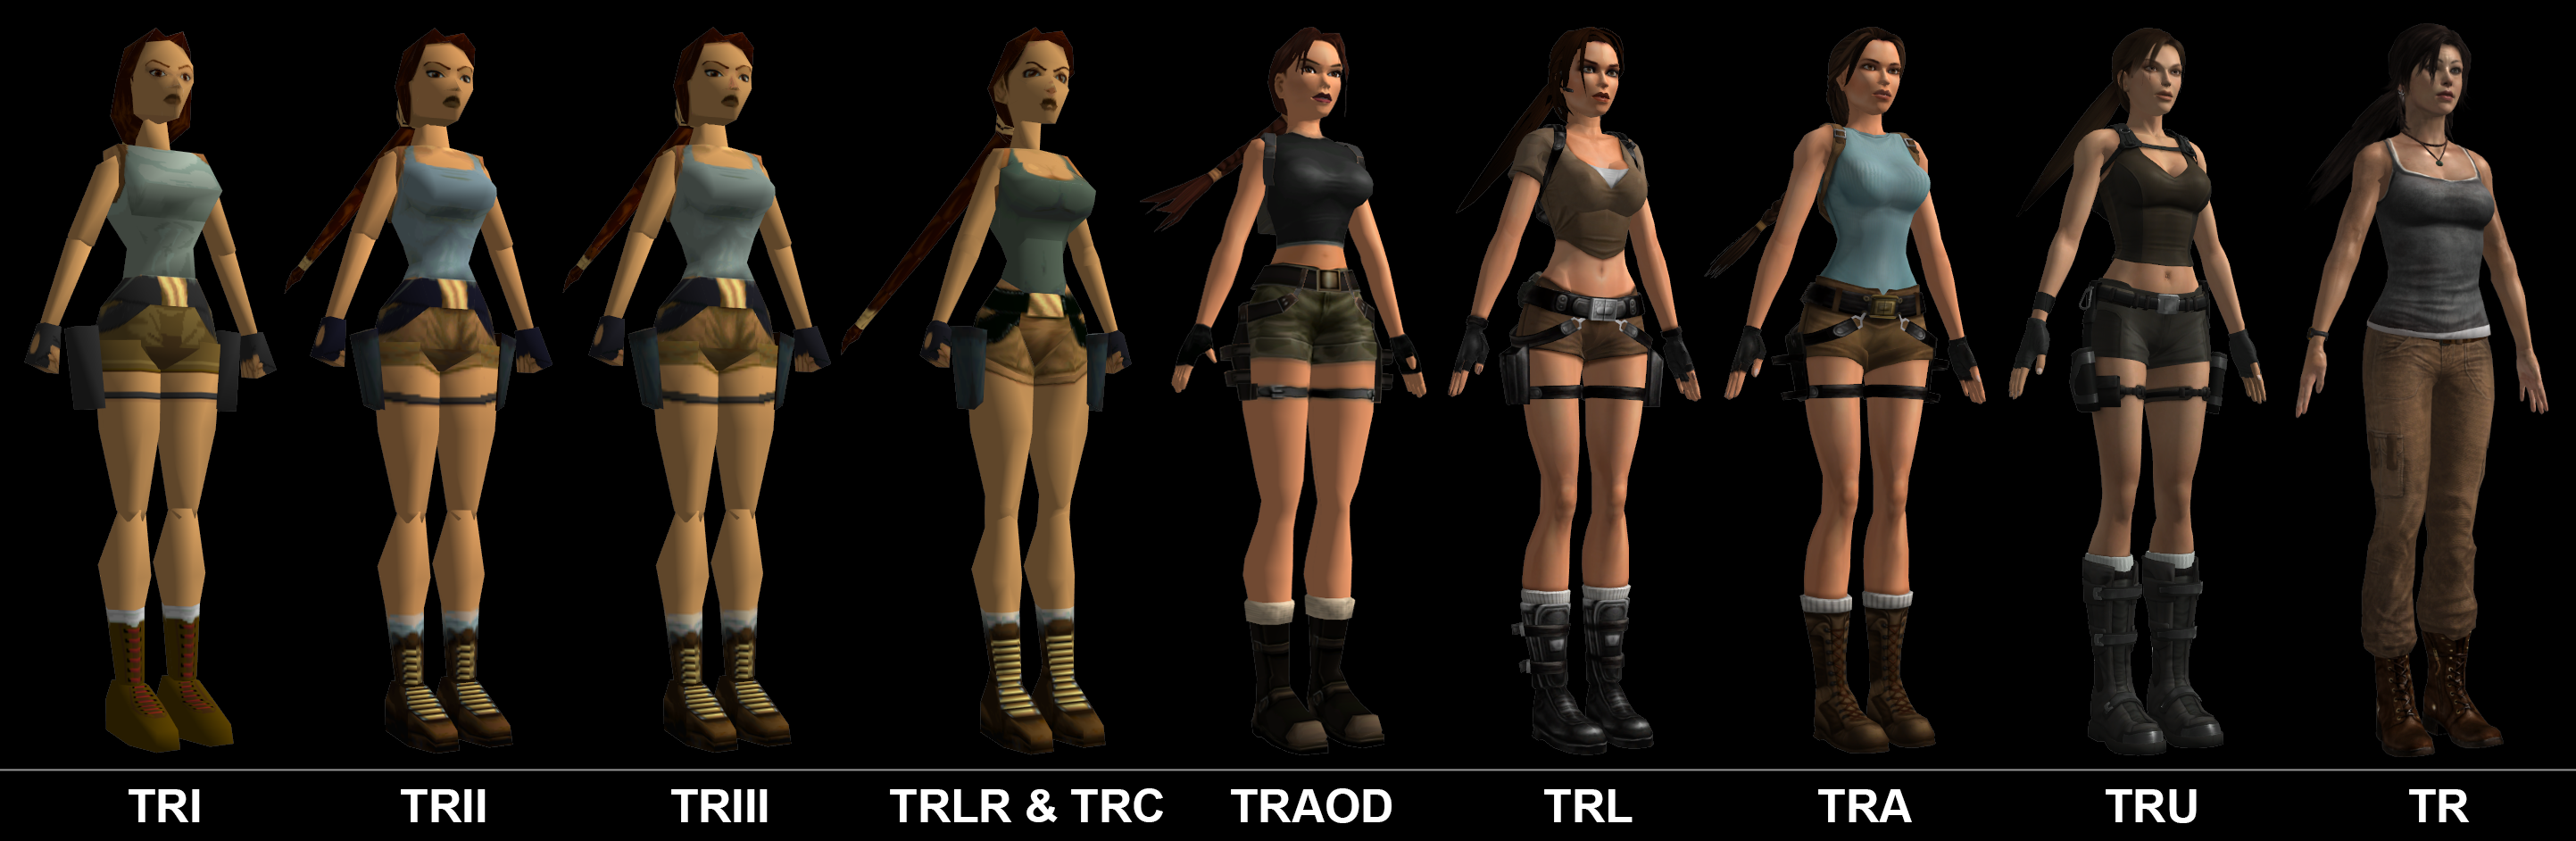 Tomb raider desnuda pron photos